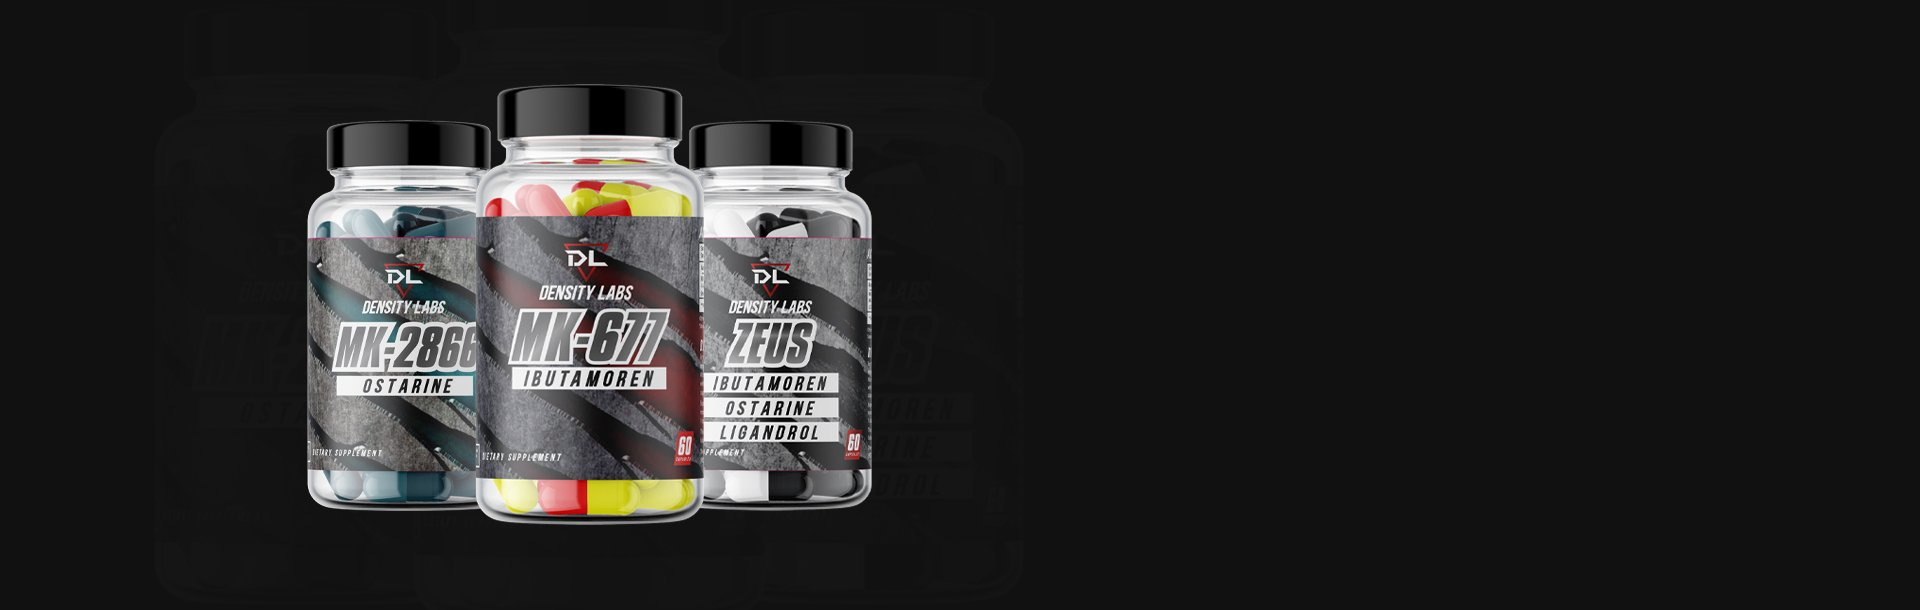 Density Labs Sarms UK Banner